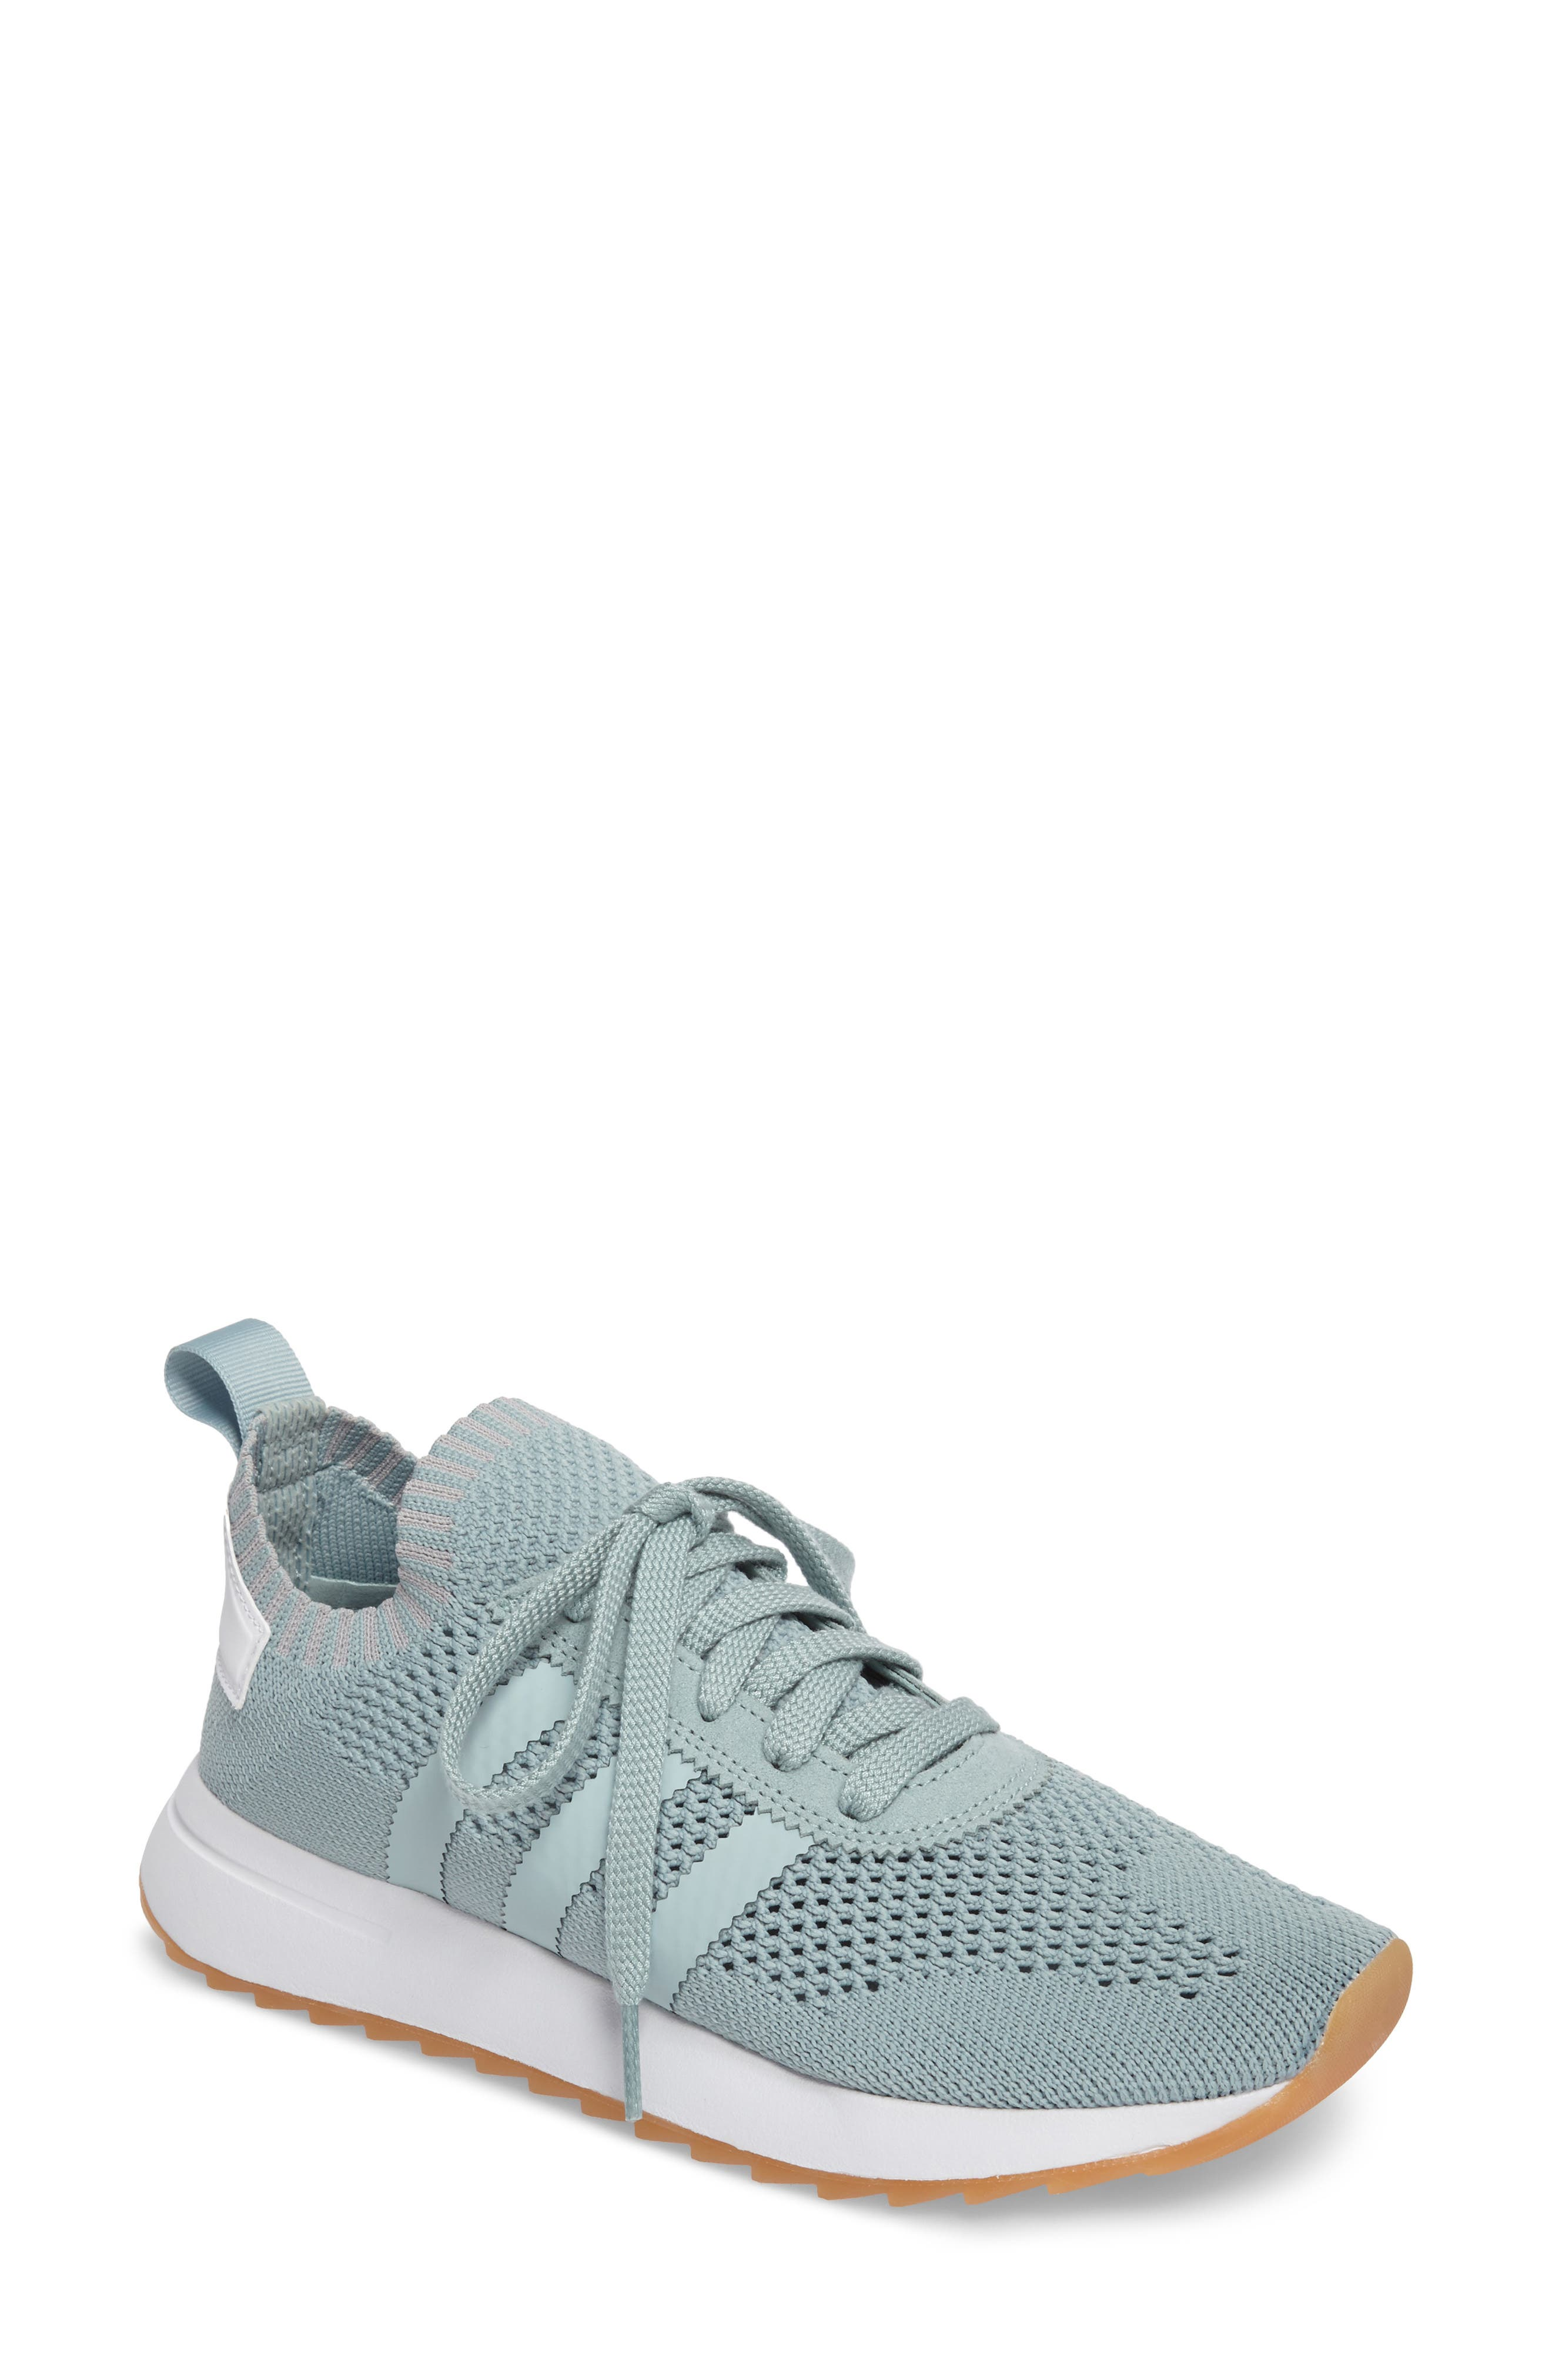 Flashback Primeknit Sneaker,                         Main,                         color, 312